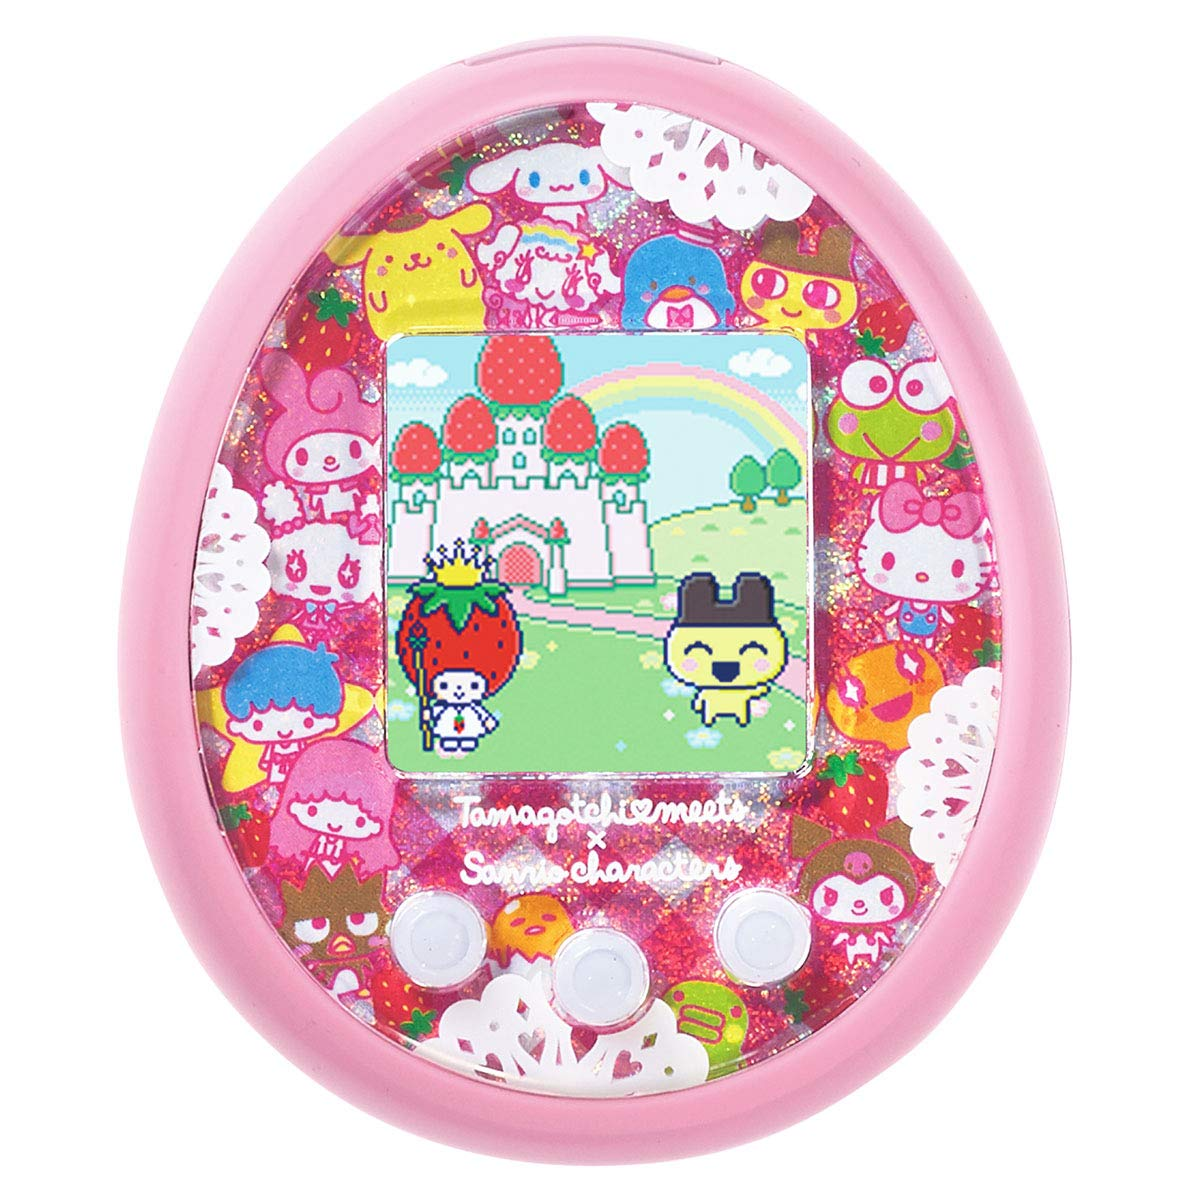 Not Pokémon related, but the Sanrio Tamagotchi Meets was released in Japan yesterday and it is absolutely adorable amzn.to/2IR1Kbw